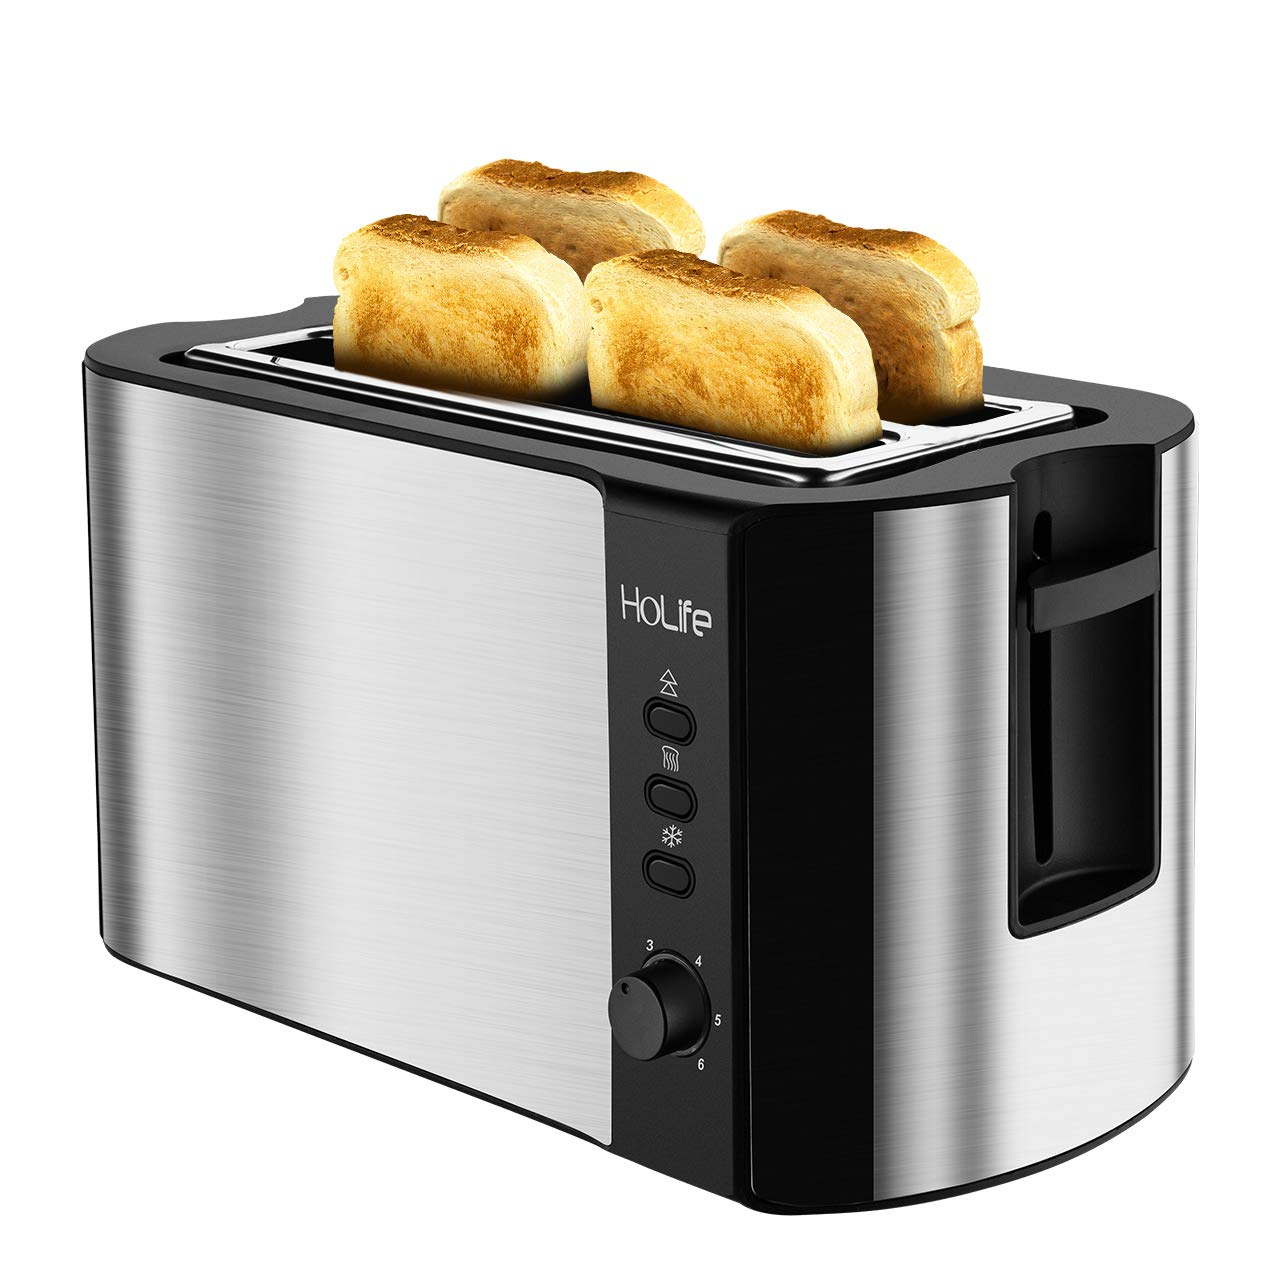 HoLife 4 Slice Long Slot Toaster Best Rated Prime, Stainless Steel Bread Toasters(Warming Rack, 6 Bread Shade Settings, Defrost/Reheat/Cancel Function, Extra Wide Slots, Removable Crumb Tray, 1500W) by Holife